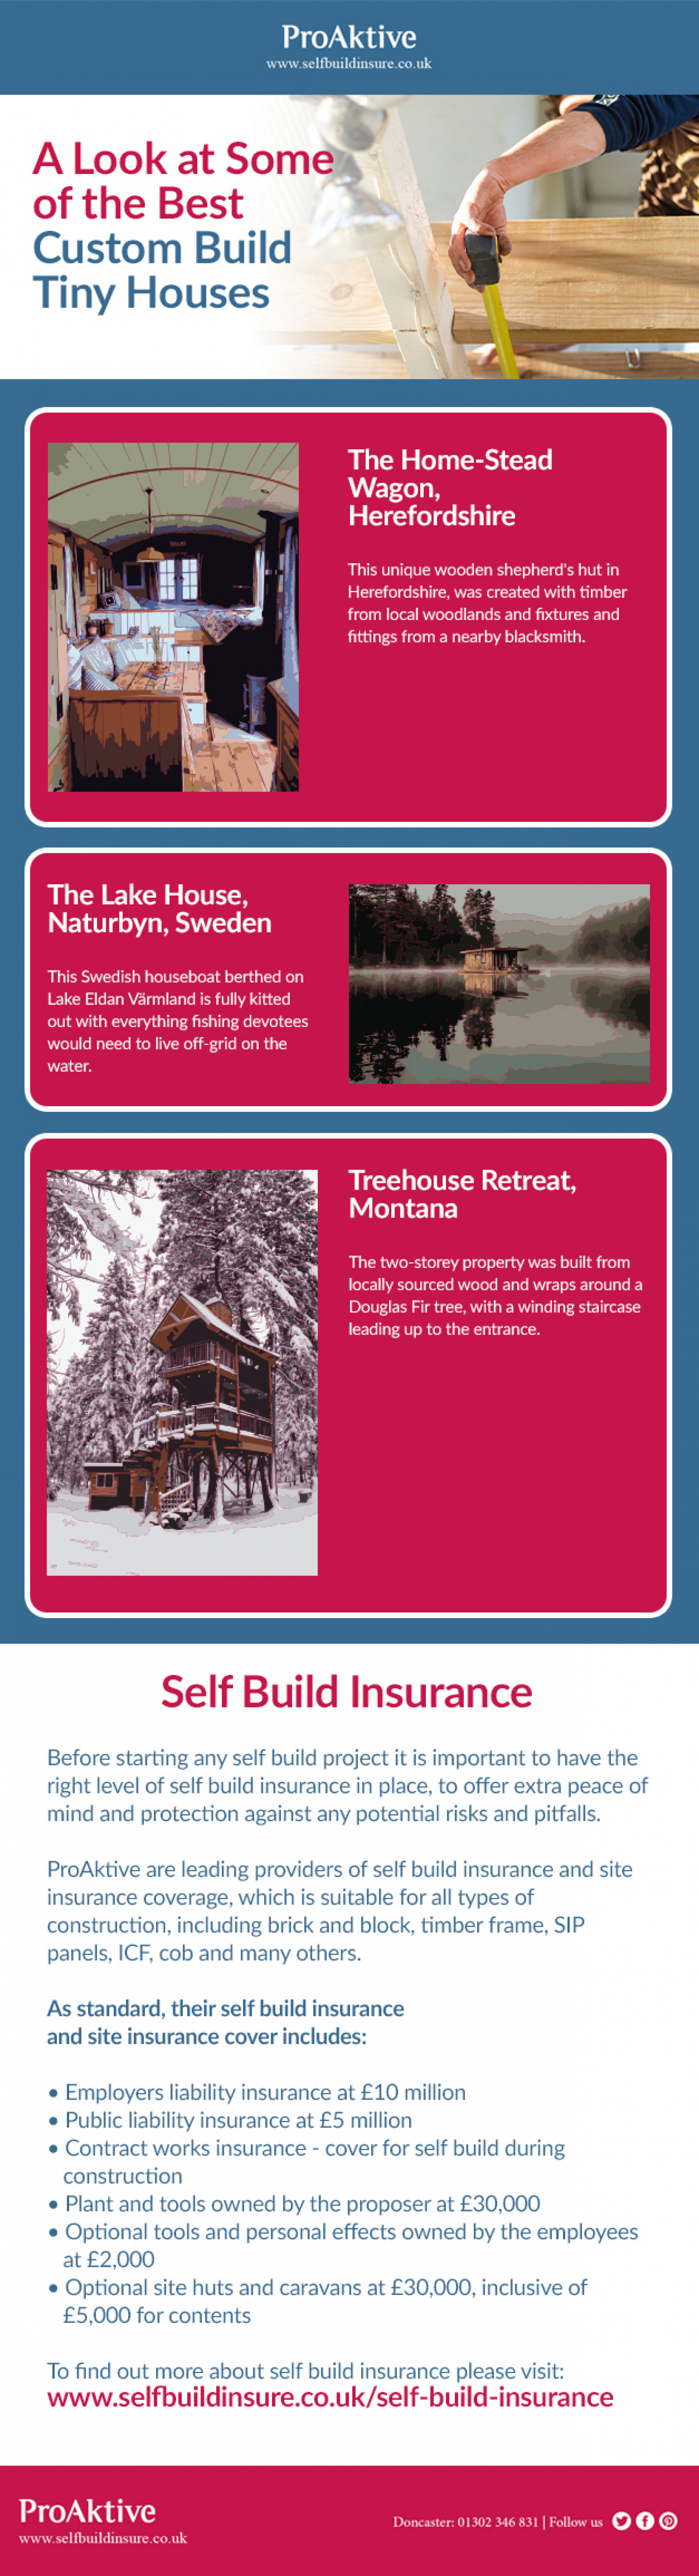 A Look at Some of the Best Custom Build Tiny Houses Infographic